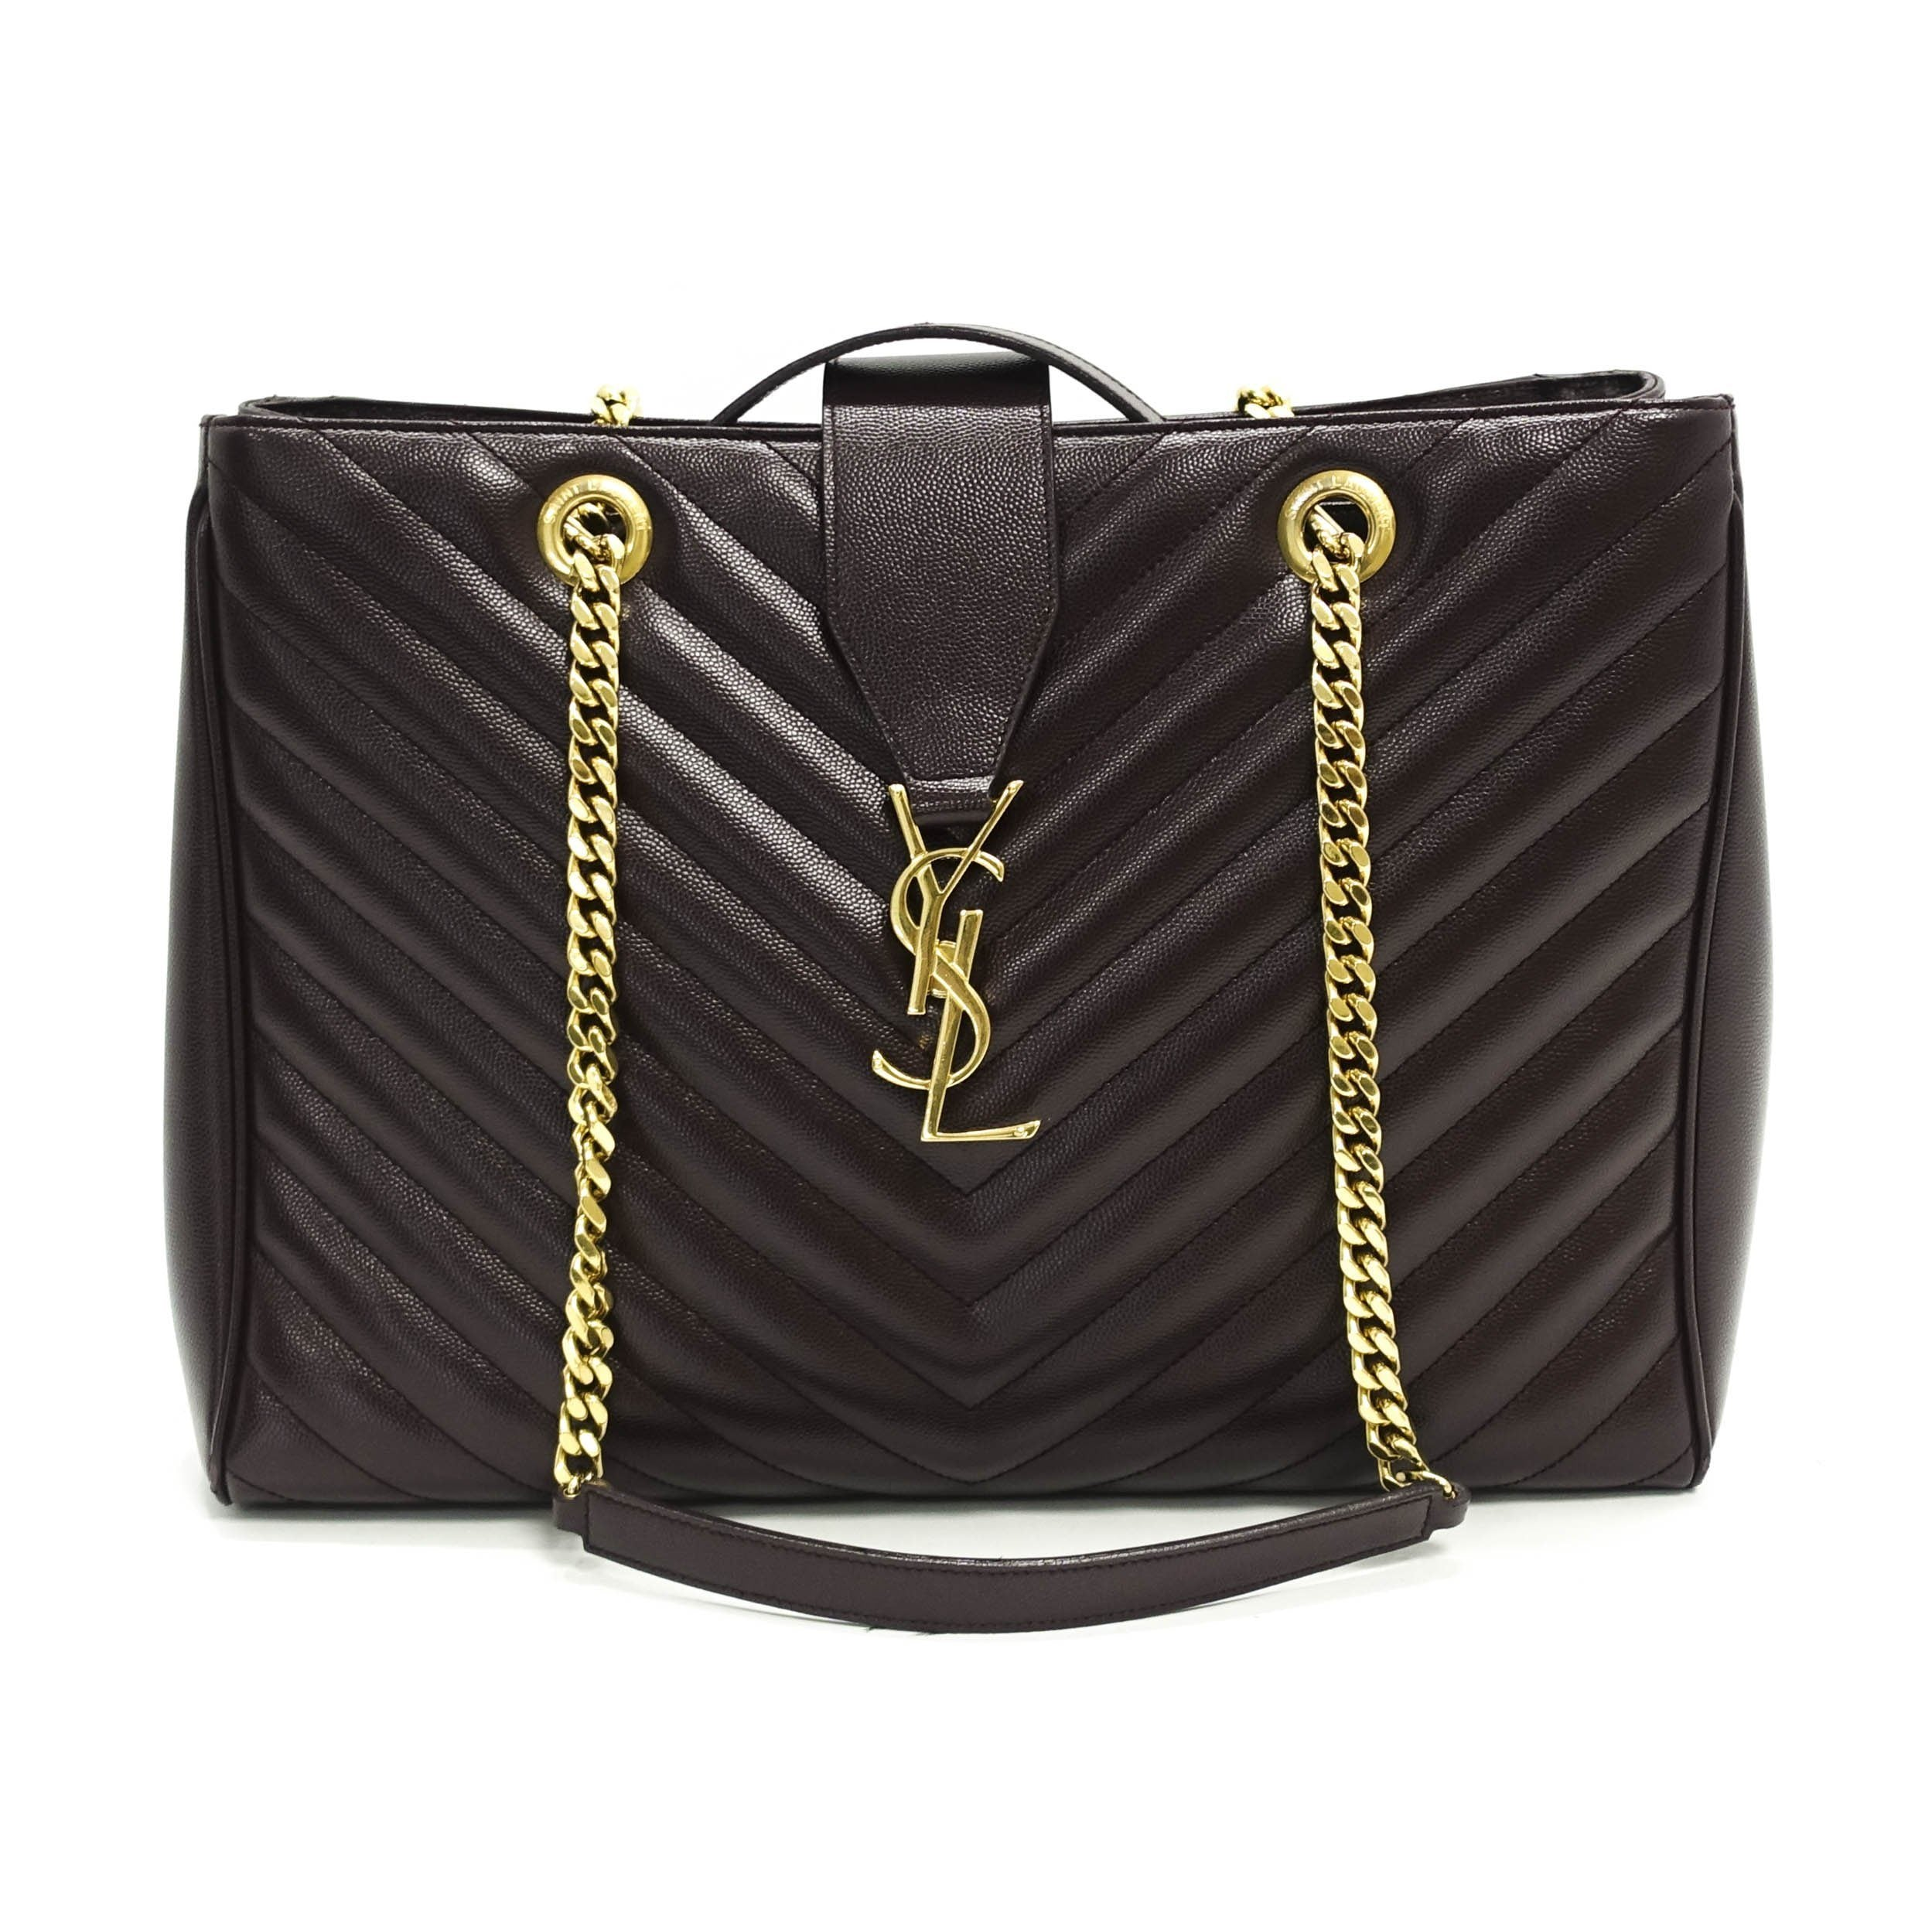 31e421755d Yves Saint Laurent Cassandre Chain-Strap Matelasse Shopper Bag